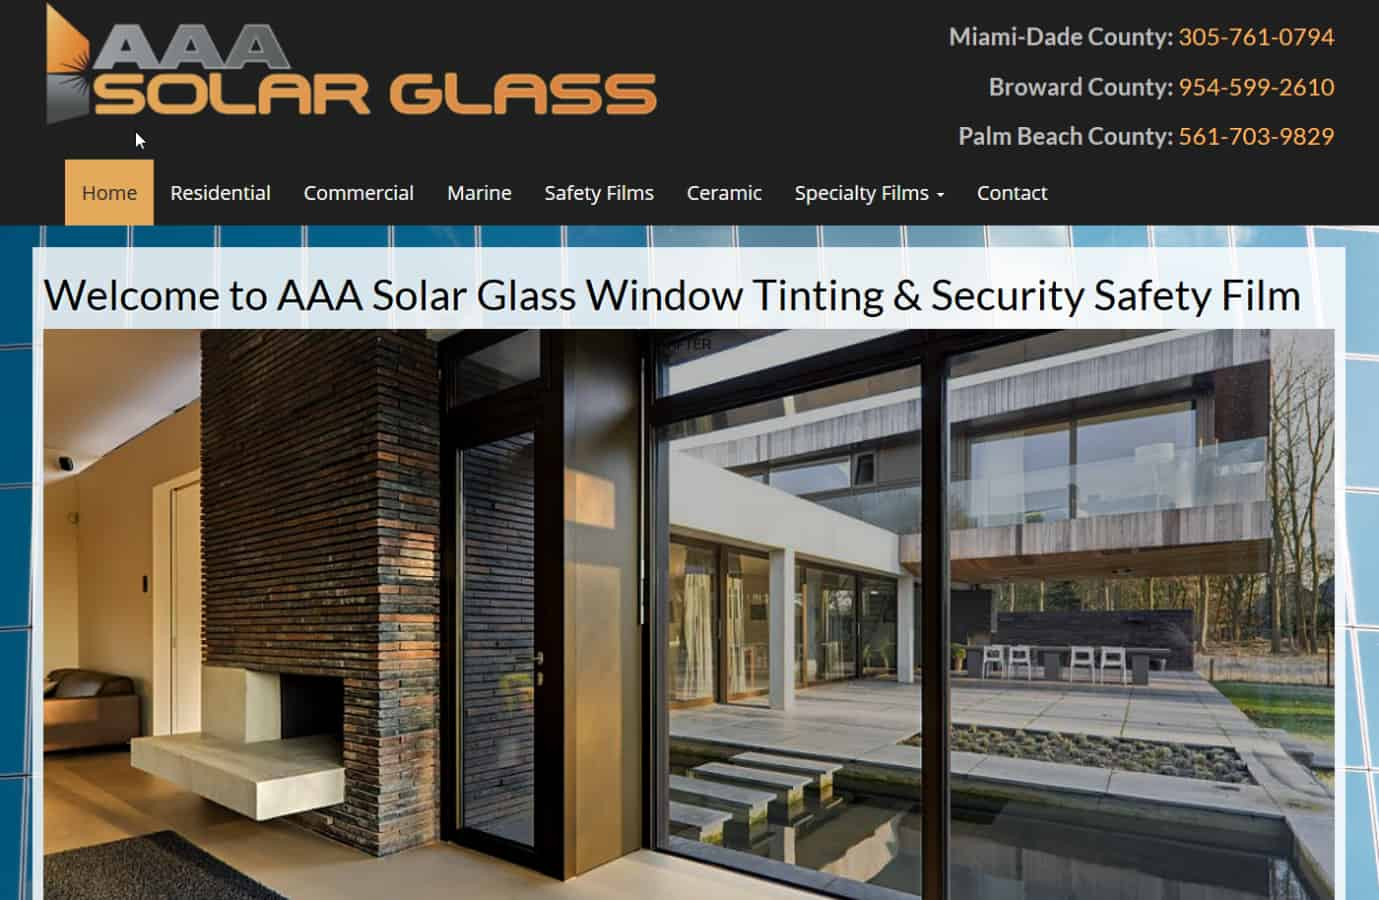 AAA Solar Glass & Window Tinting Ft. Lauderdale Website by iSatisfy.com